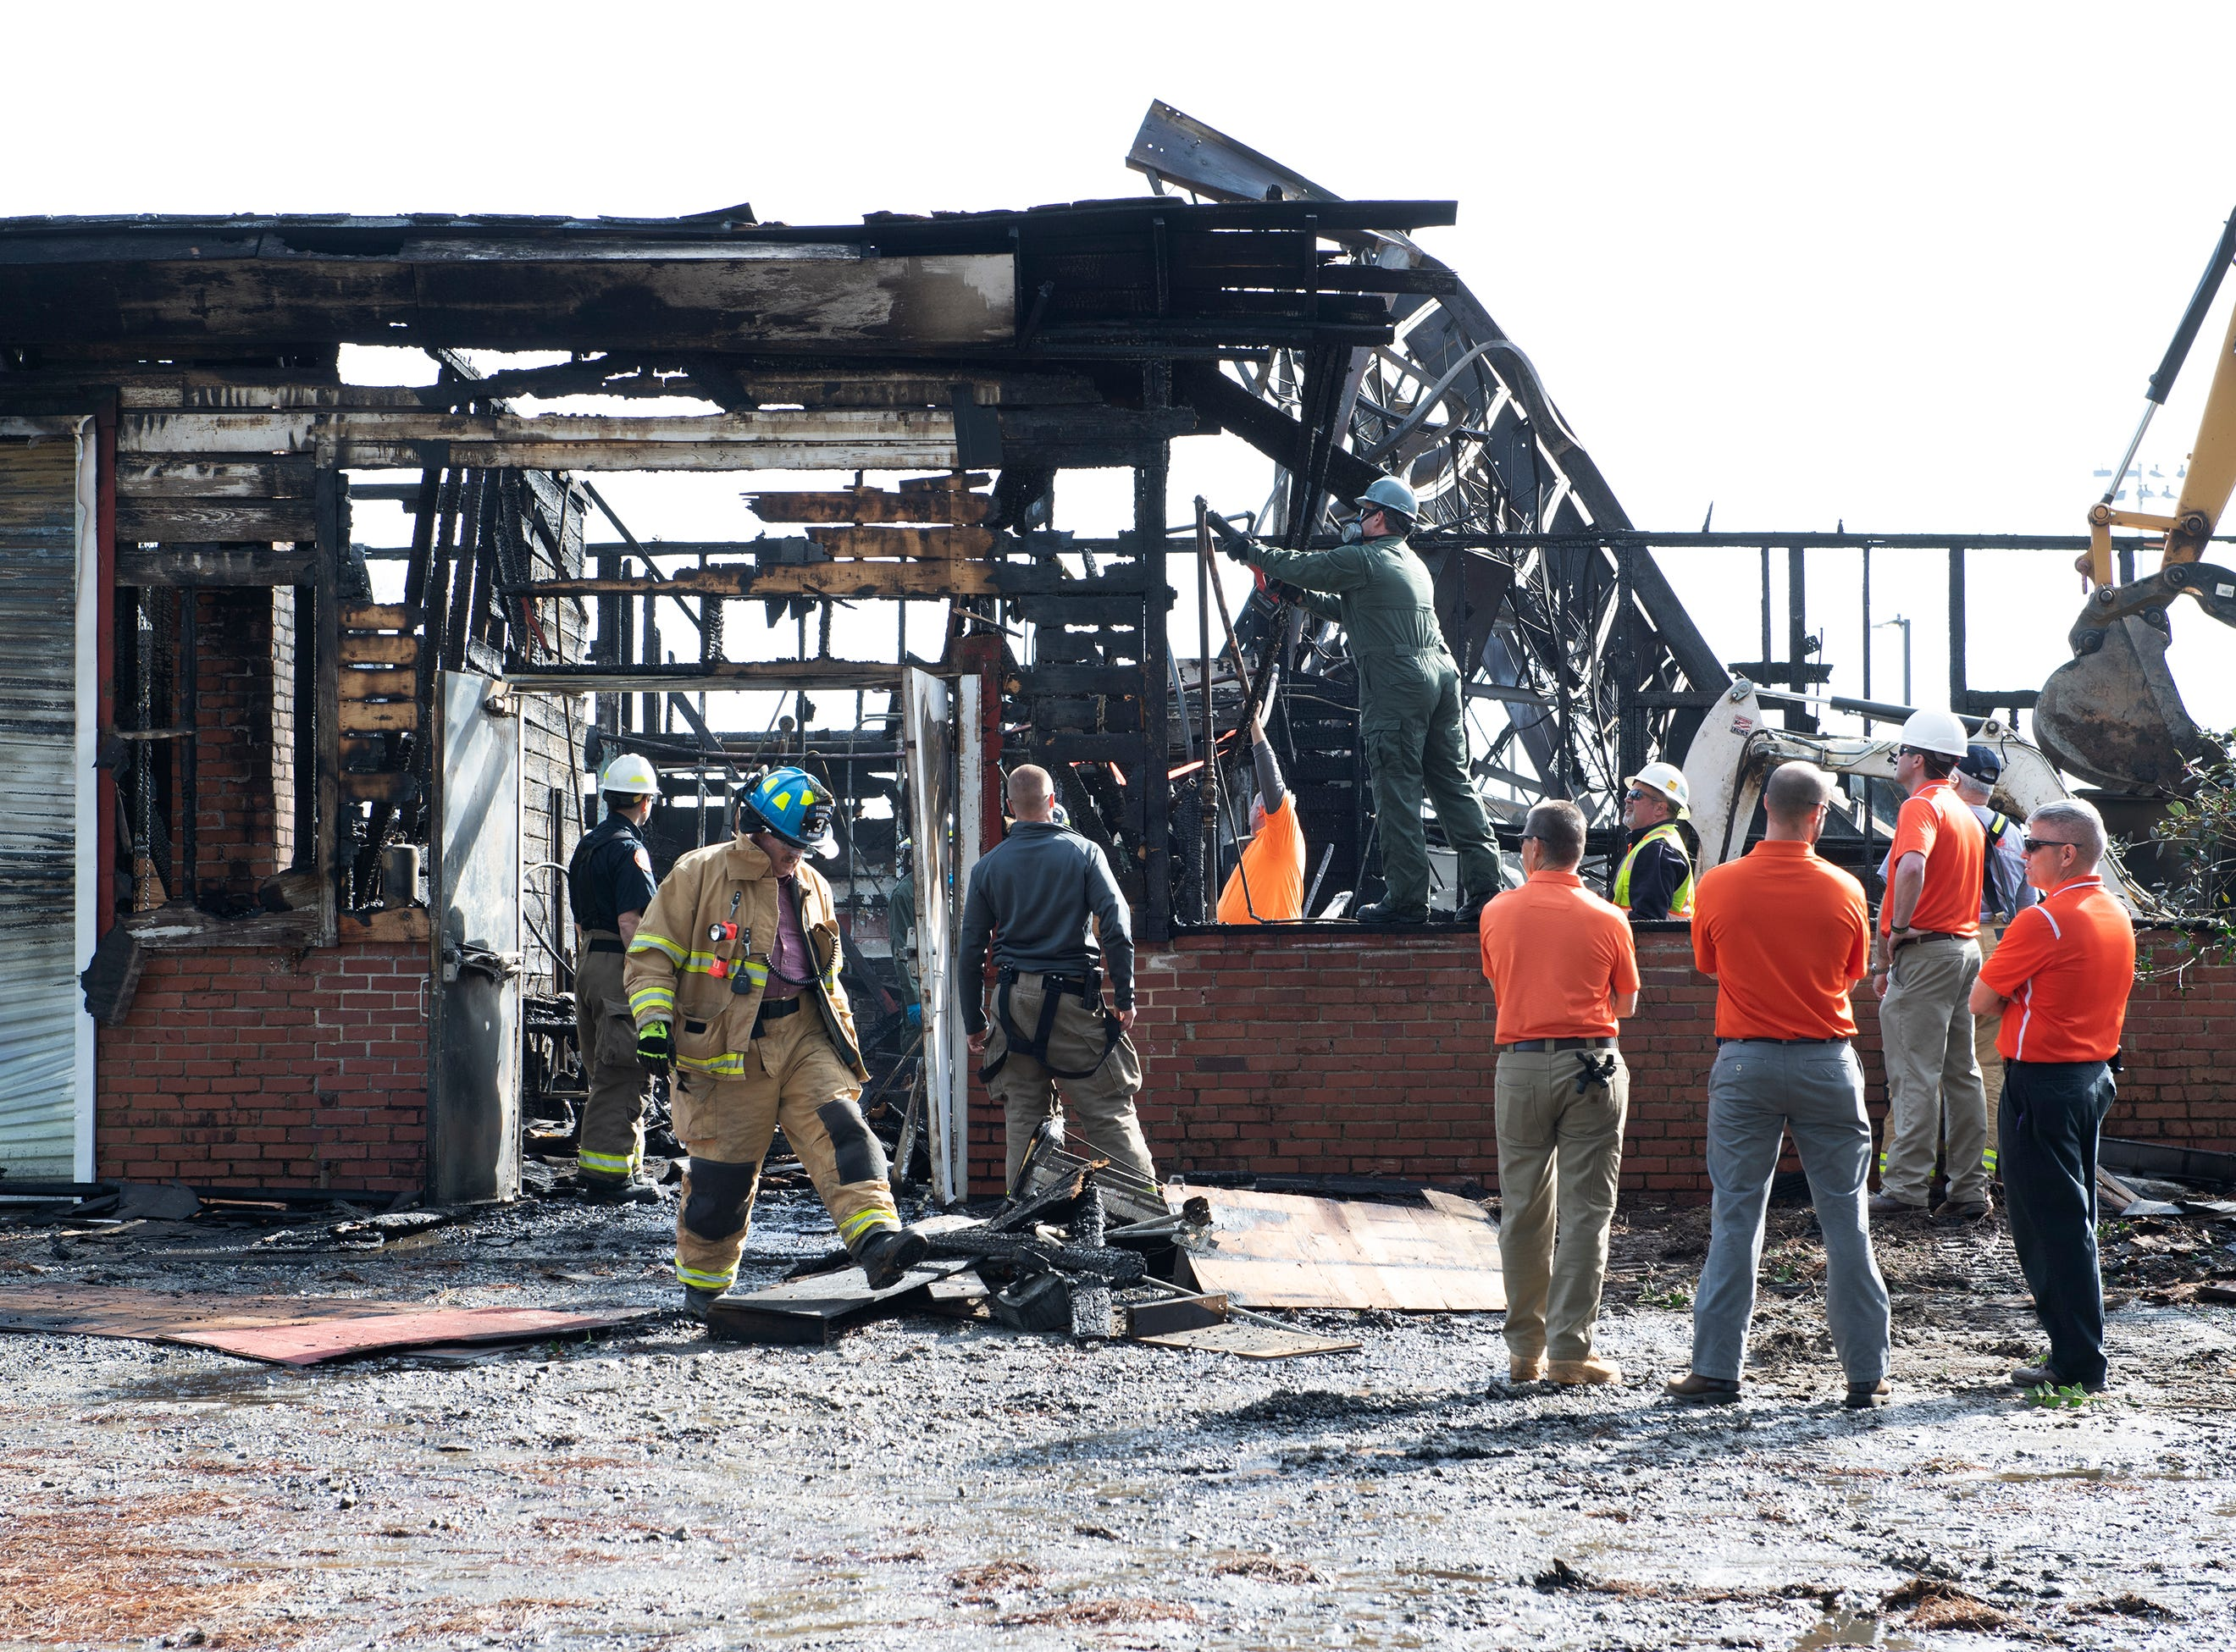 Emergency and Clemson personnel work on Clemson's Y Barn which burned down Friday, February 1, 2019.